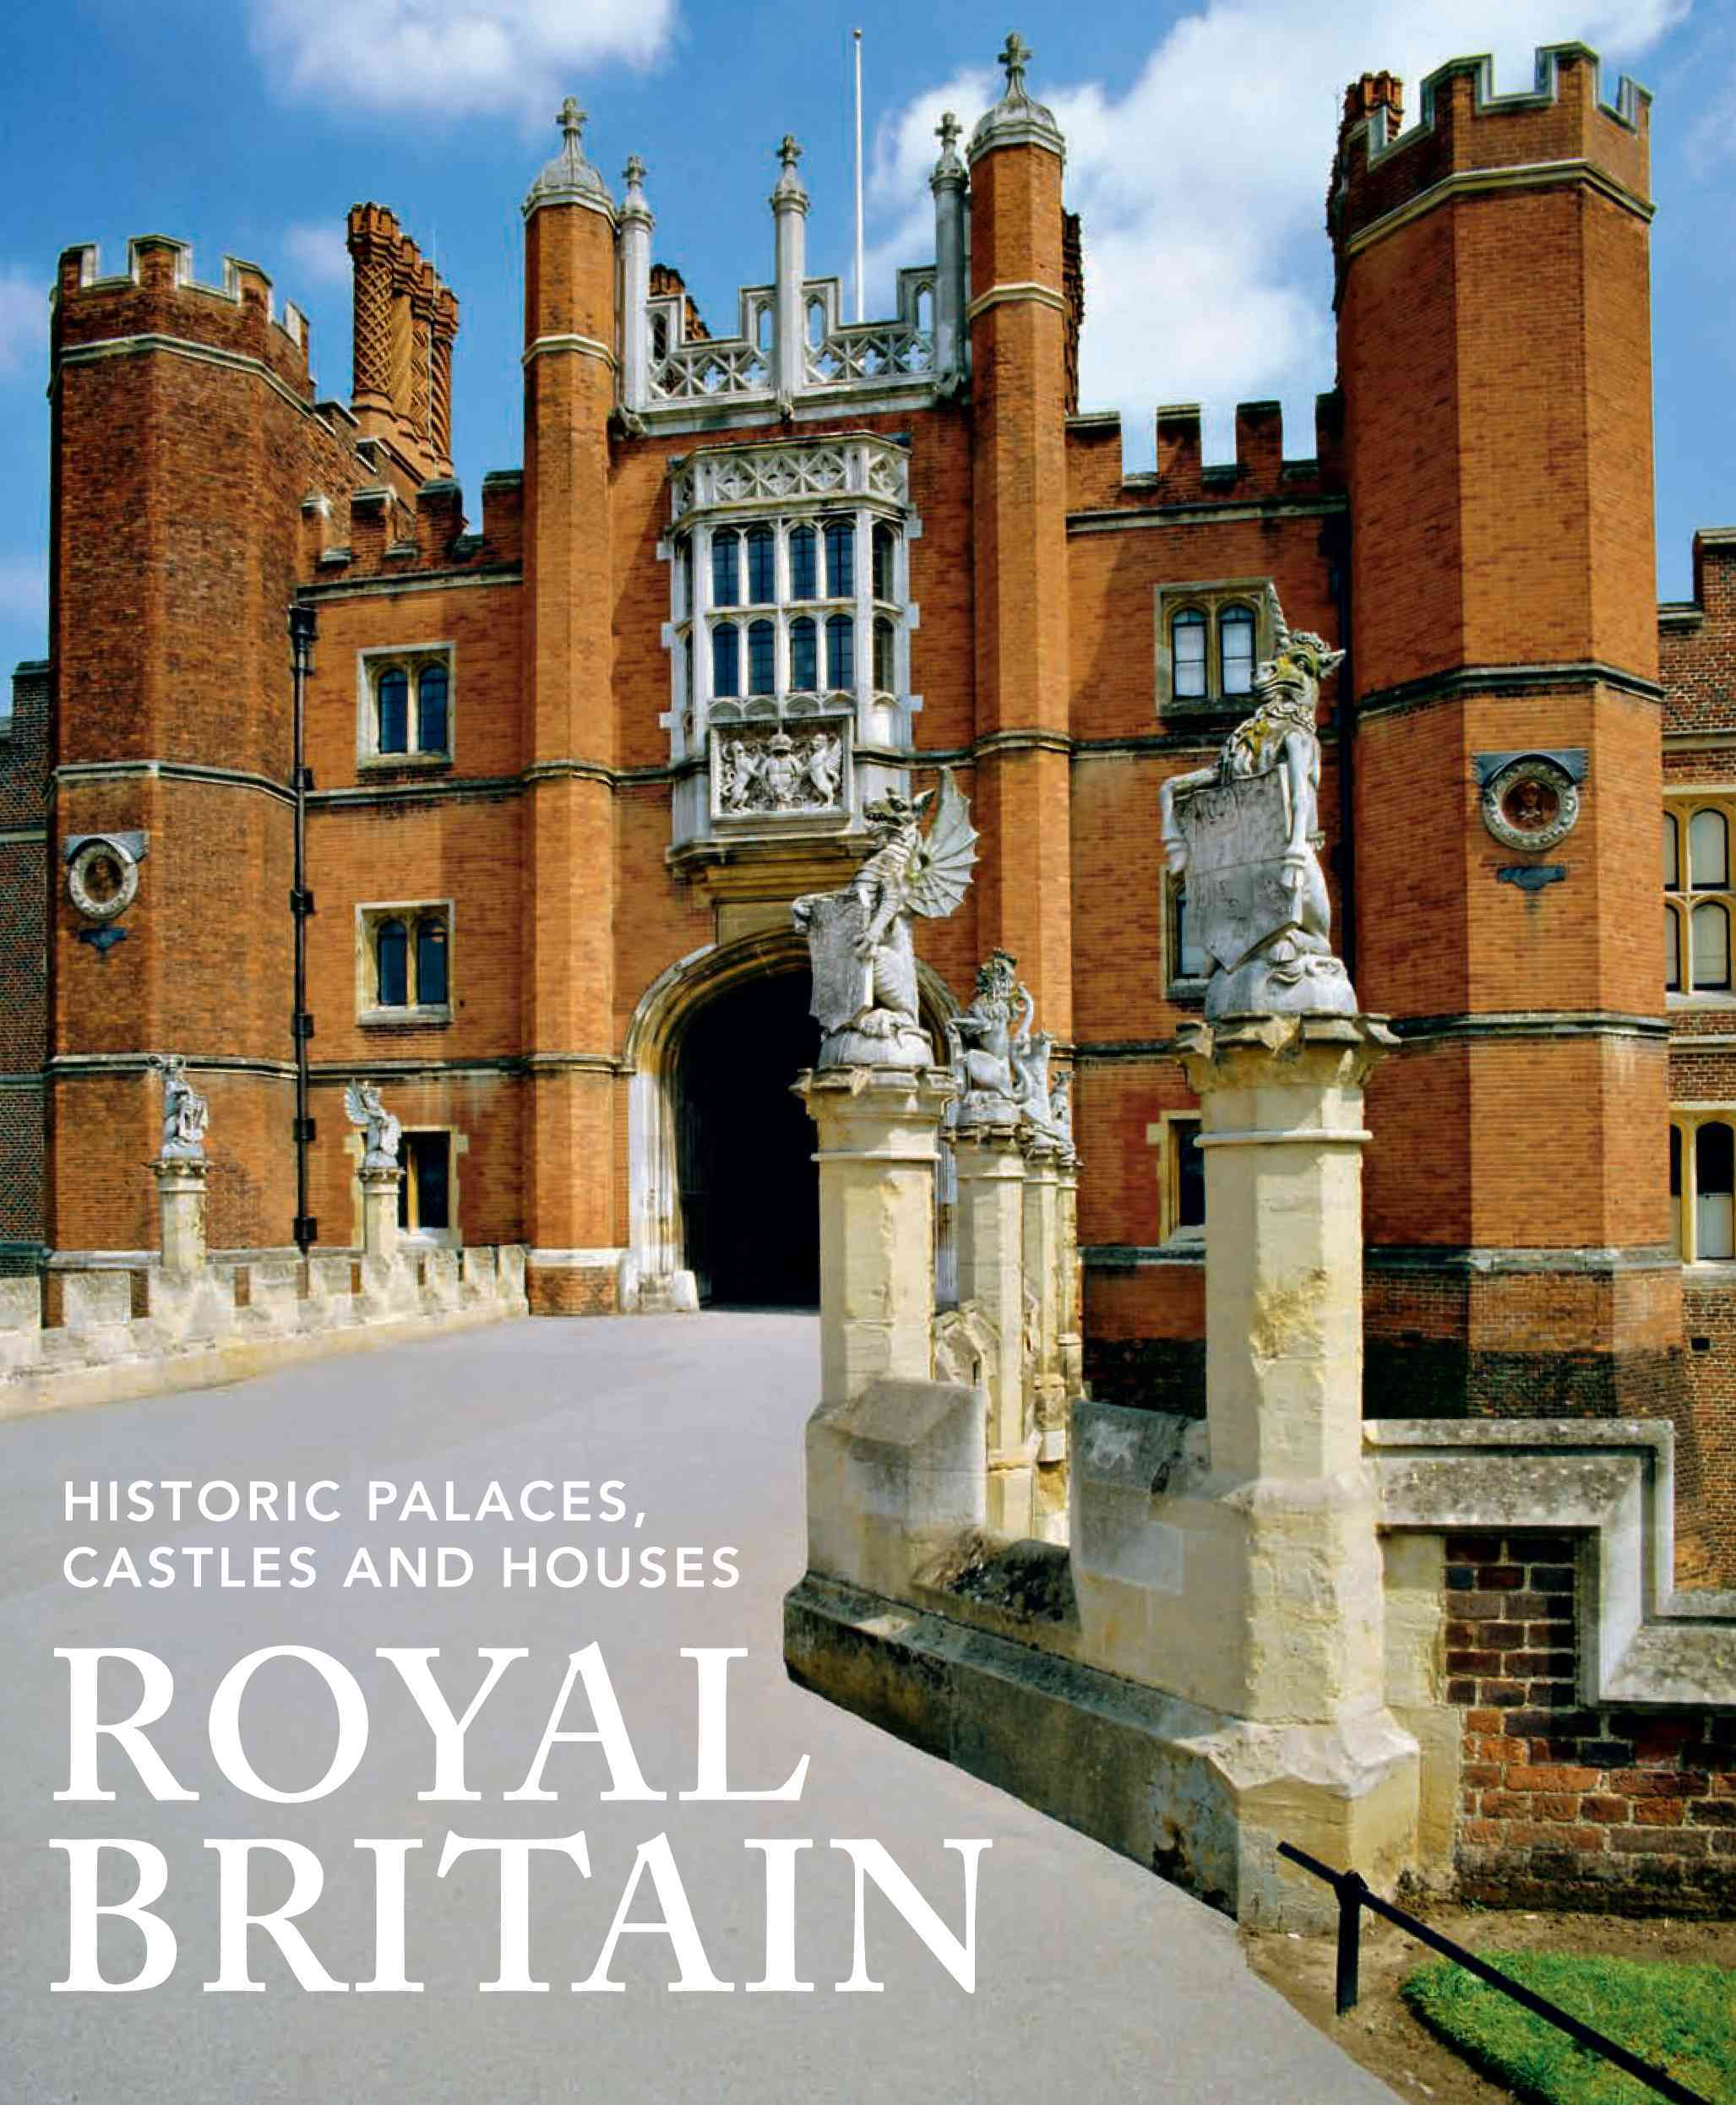 Royal Britain: Historic Palaces, Castles and Houses (Paperback)